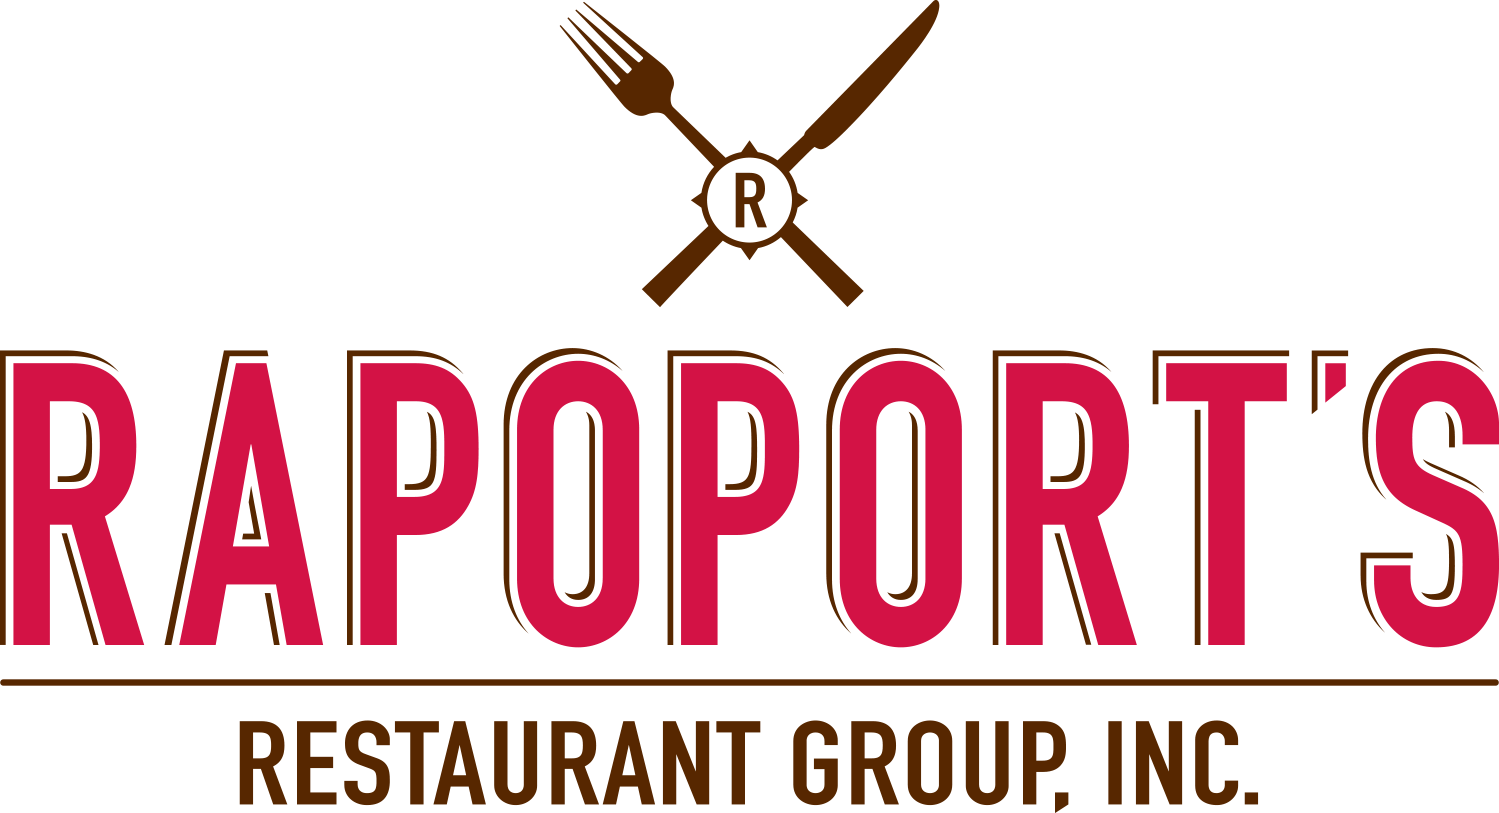 Rapoport's Restaurant Group